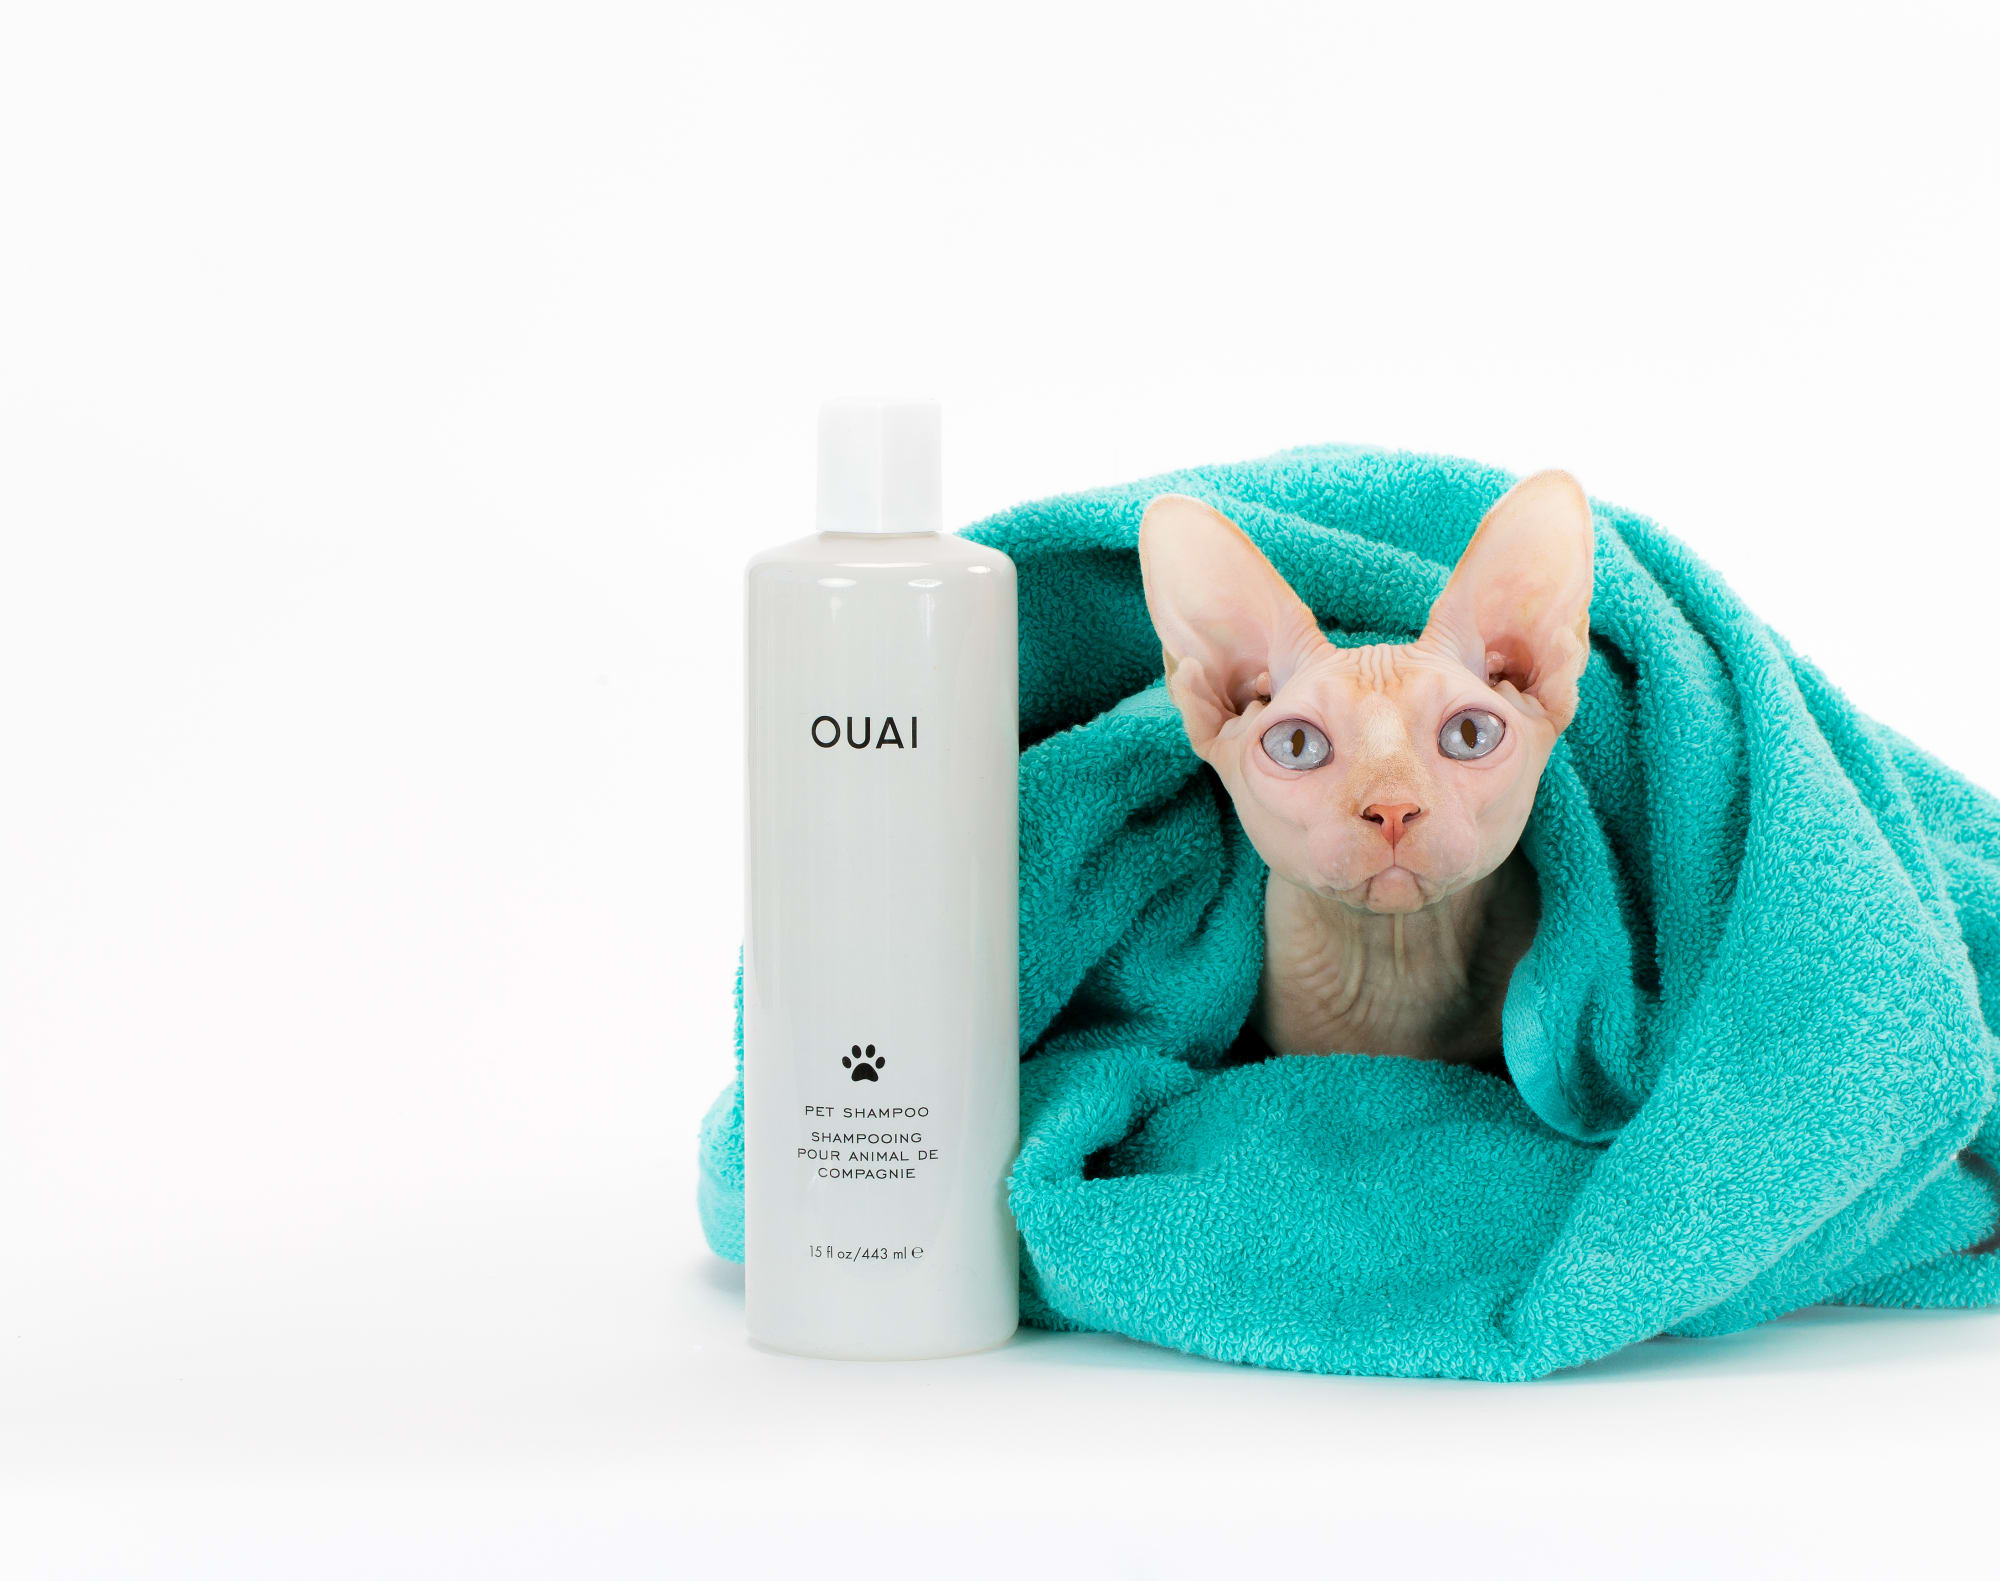 ouai pet shampoo hairless cat.jpg